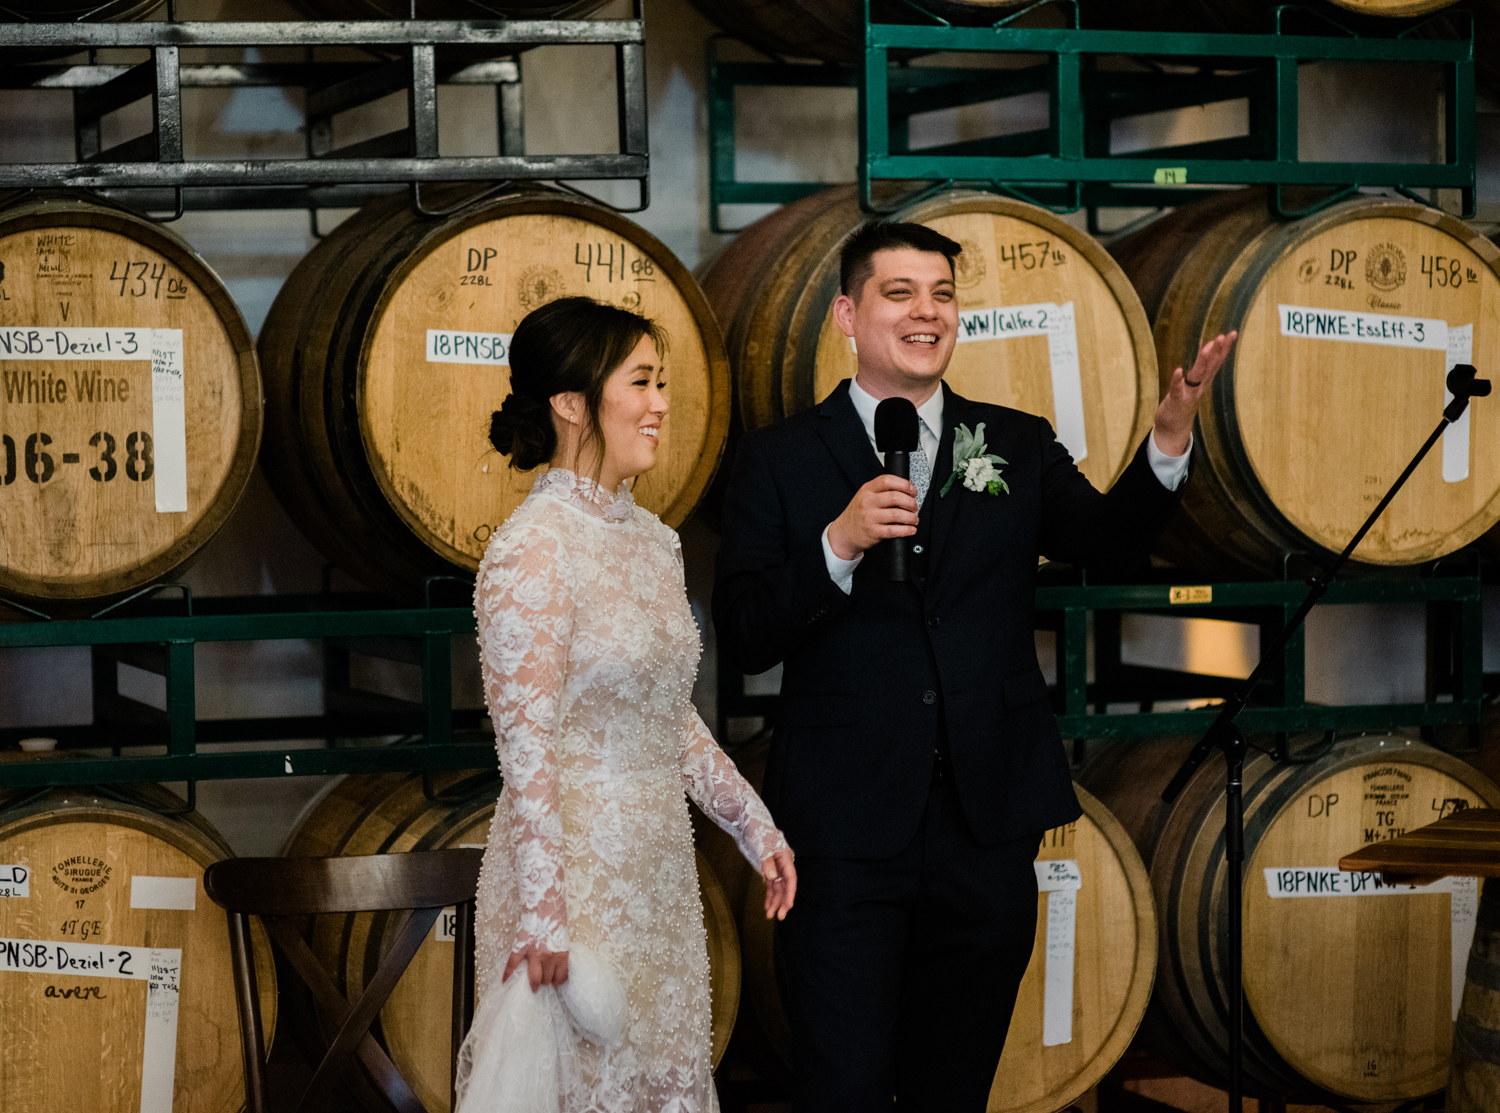 Potrero_Hill_Wine_Works_Wedding_ChristinaRichards_084.jpg